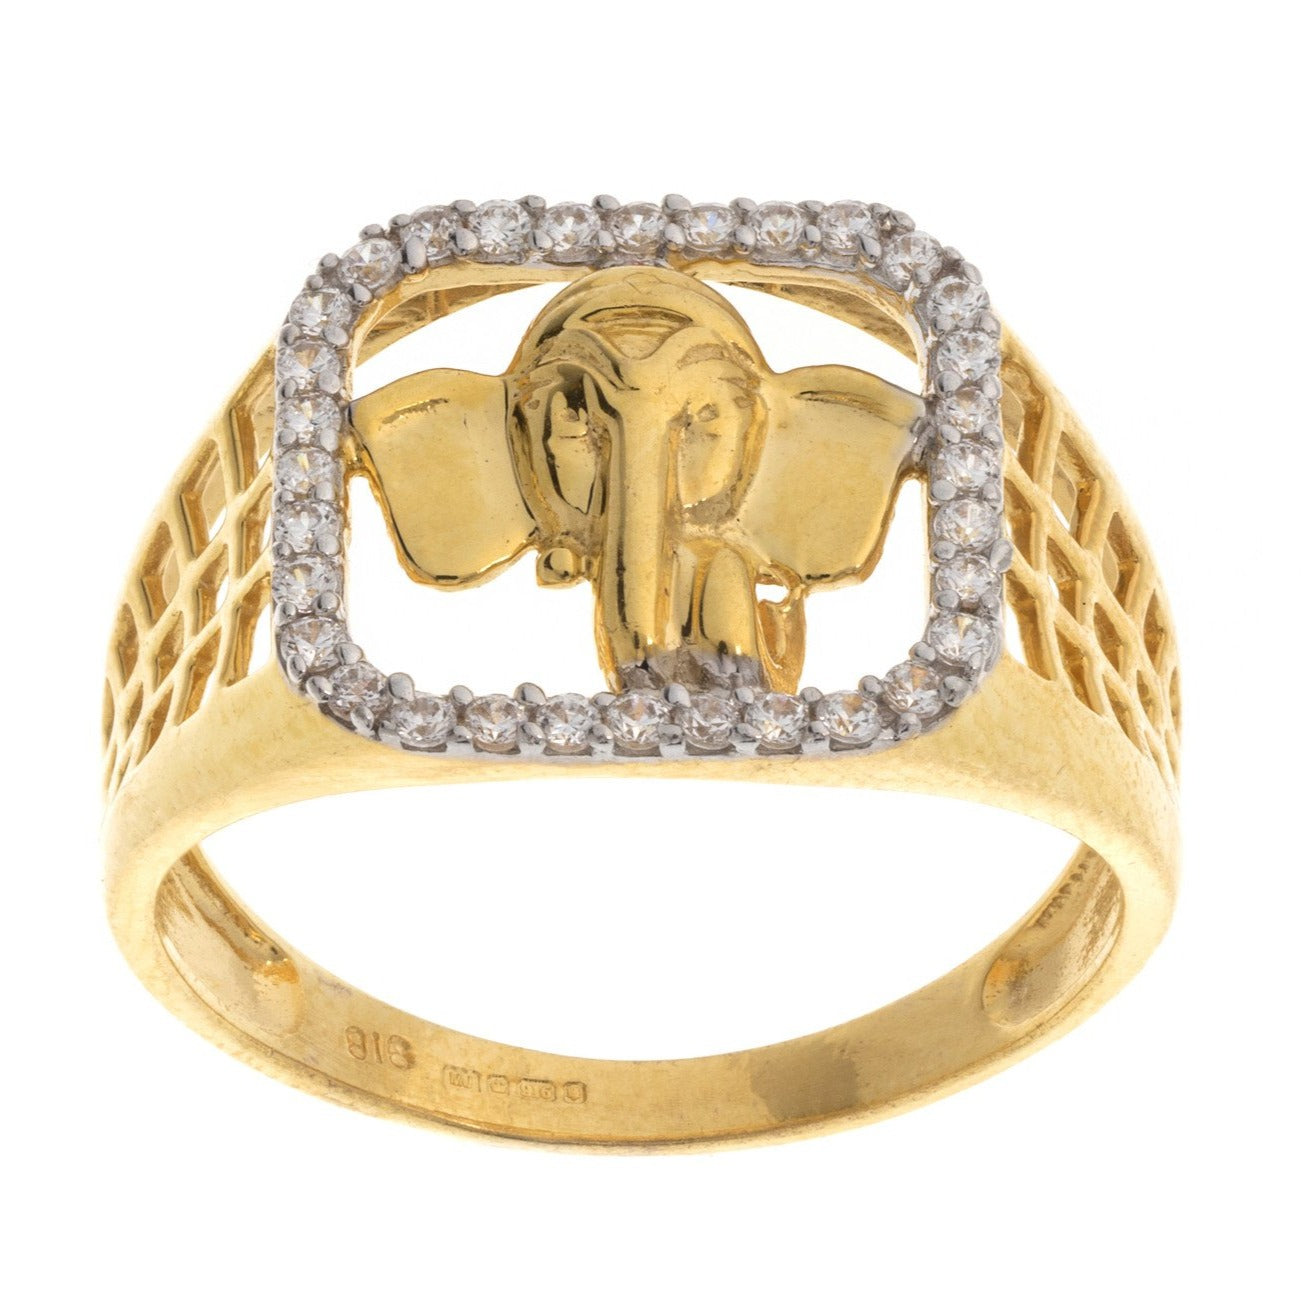 22ct Yellow Gold Cubic Zirconia Men's Ganesh Ring, Minar Jewellers - 2